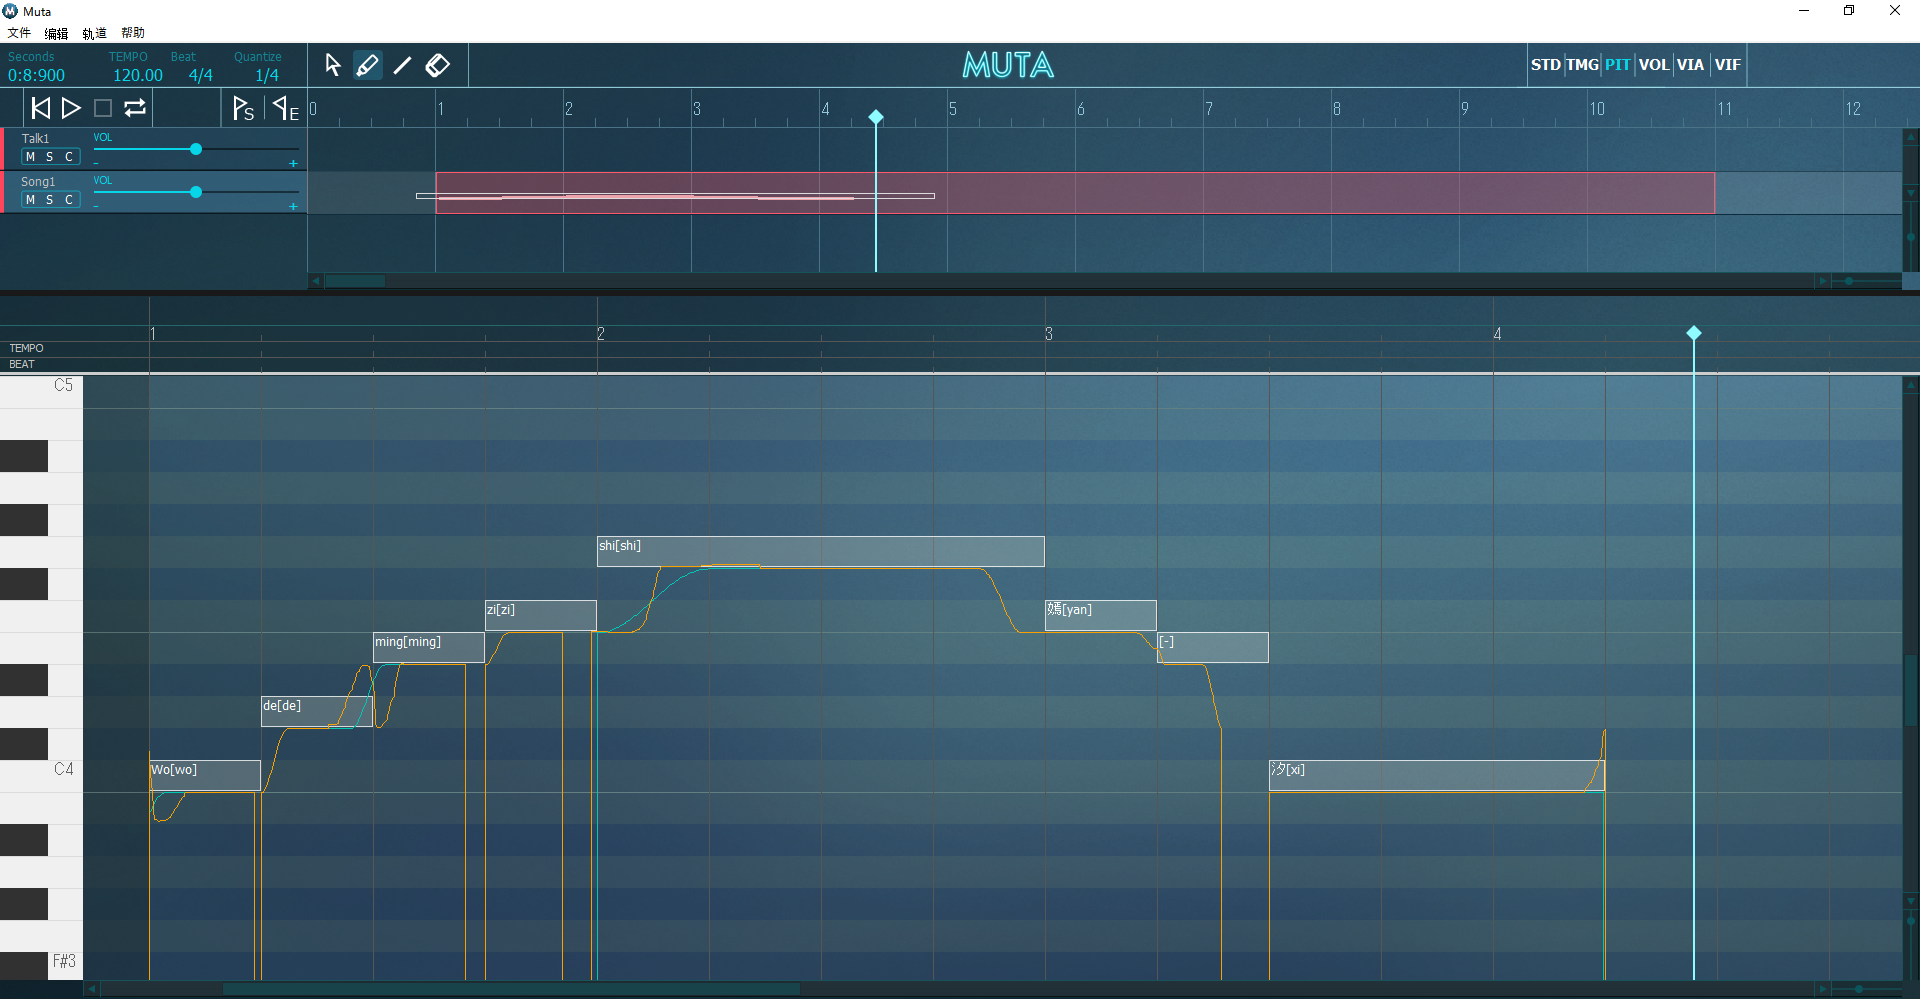 MUTA_SONG_PIT.png